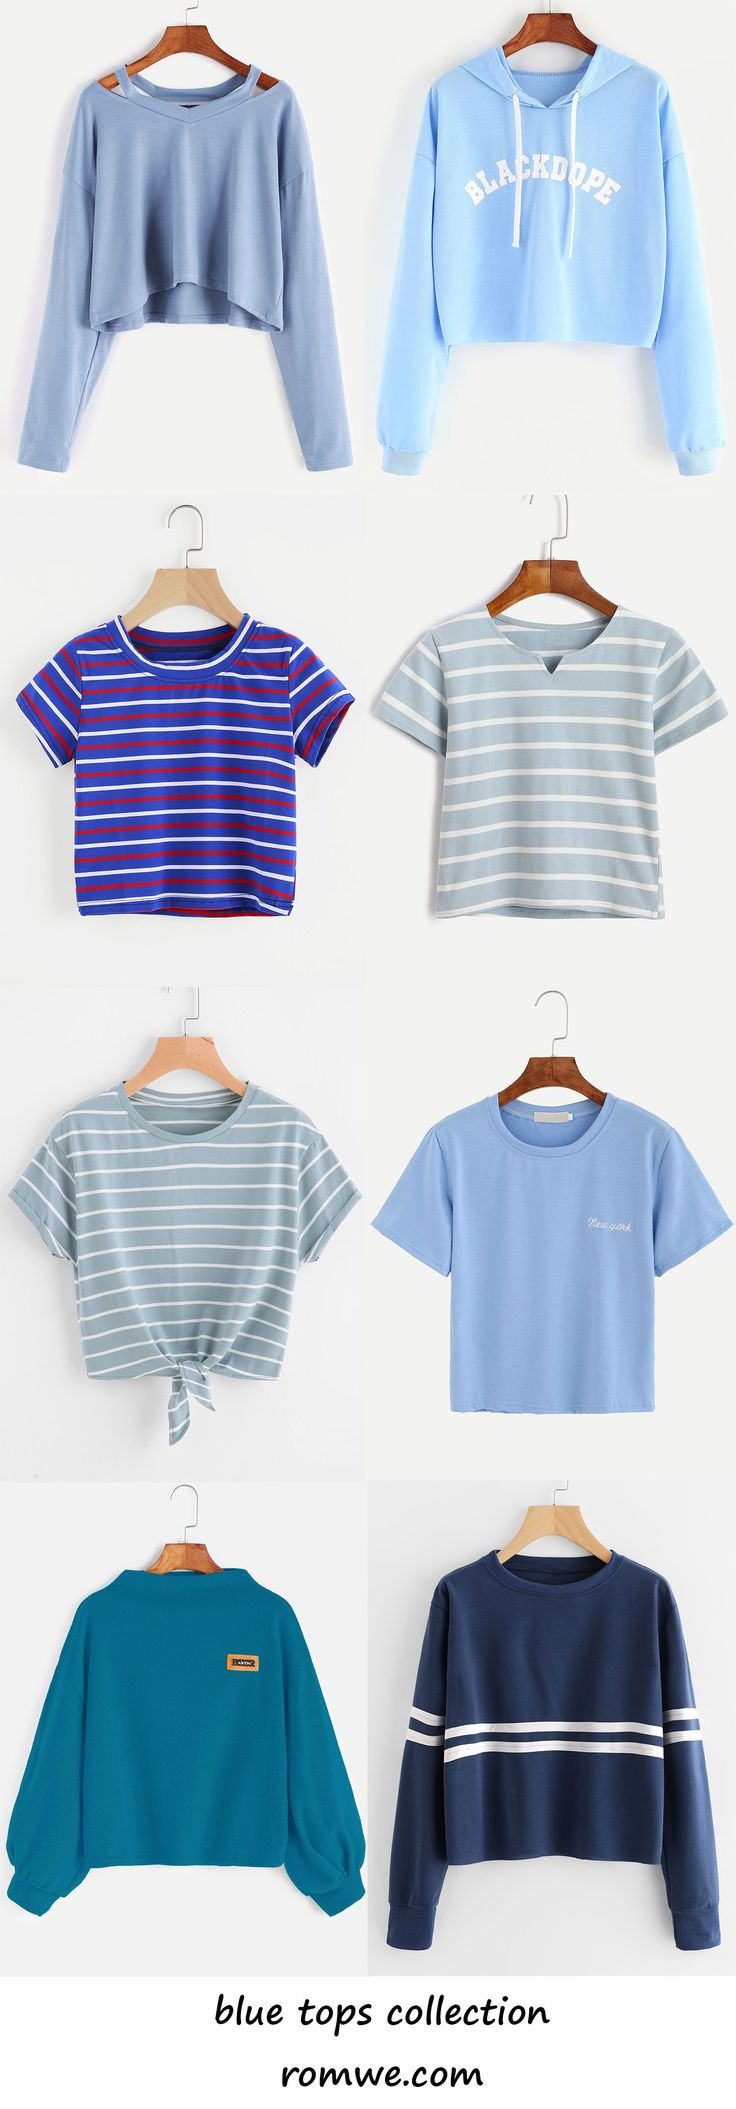 blue tees collection 2017 - romwe.com